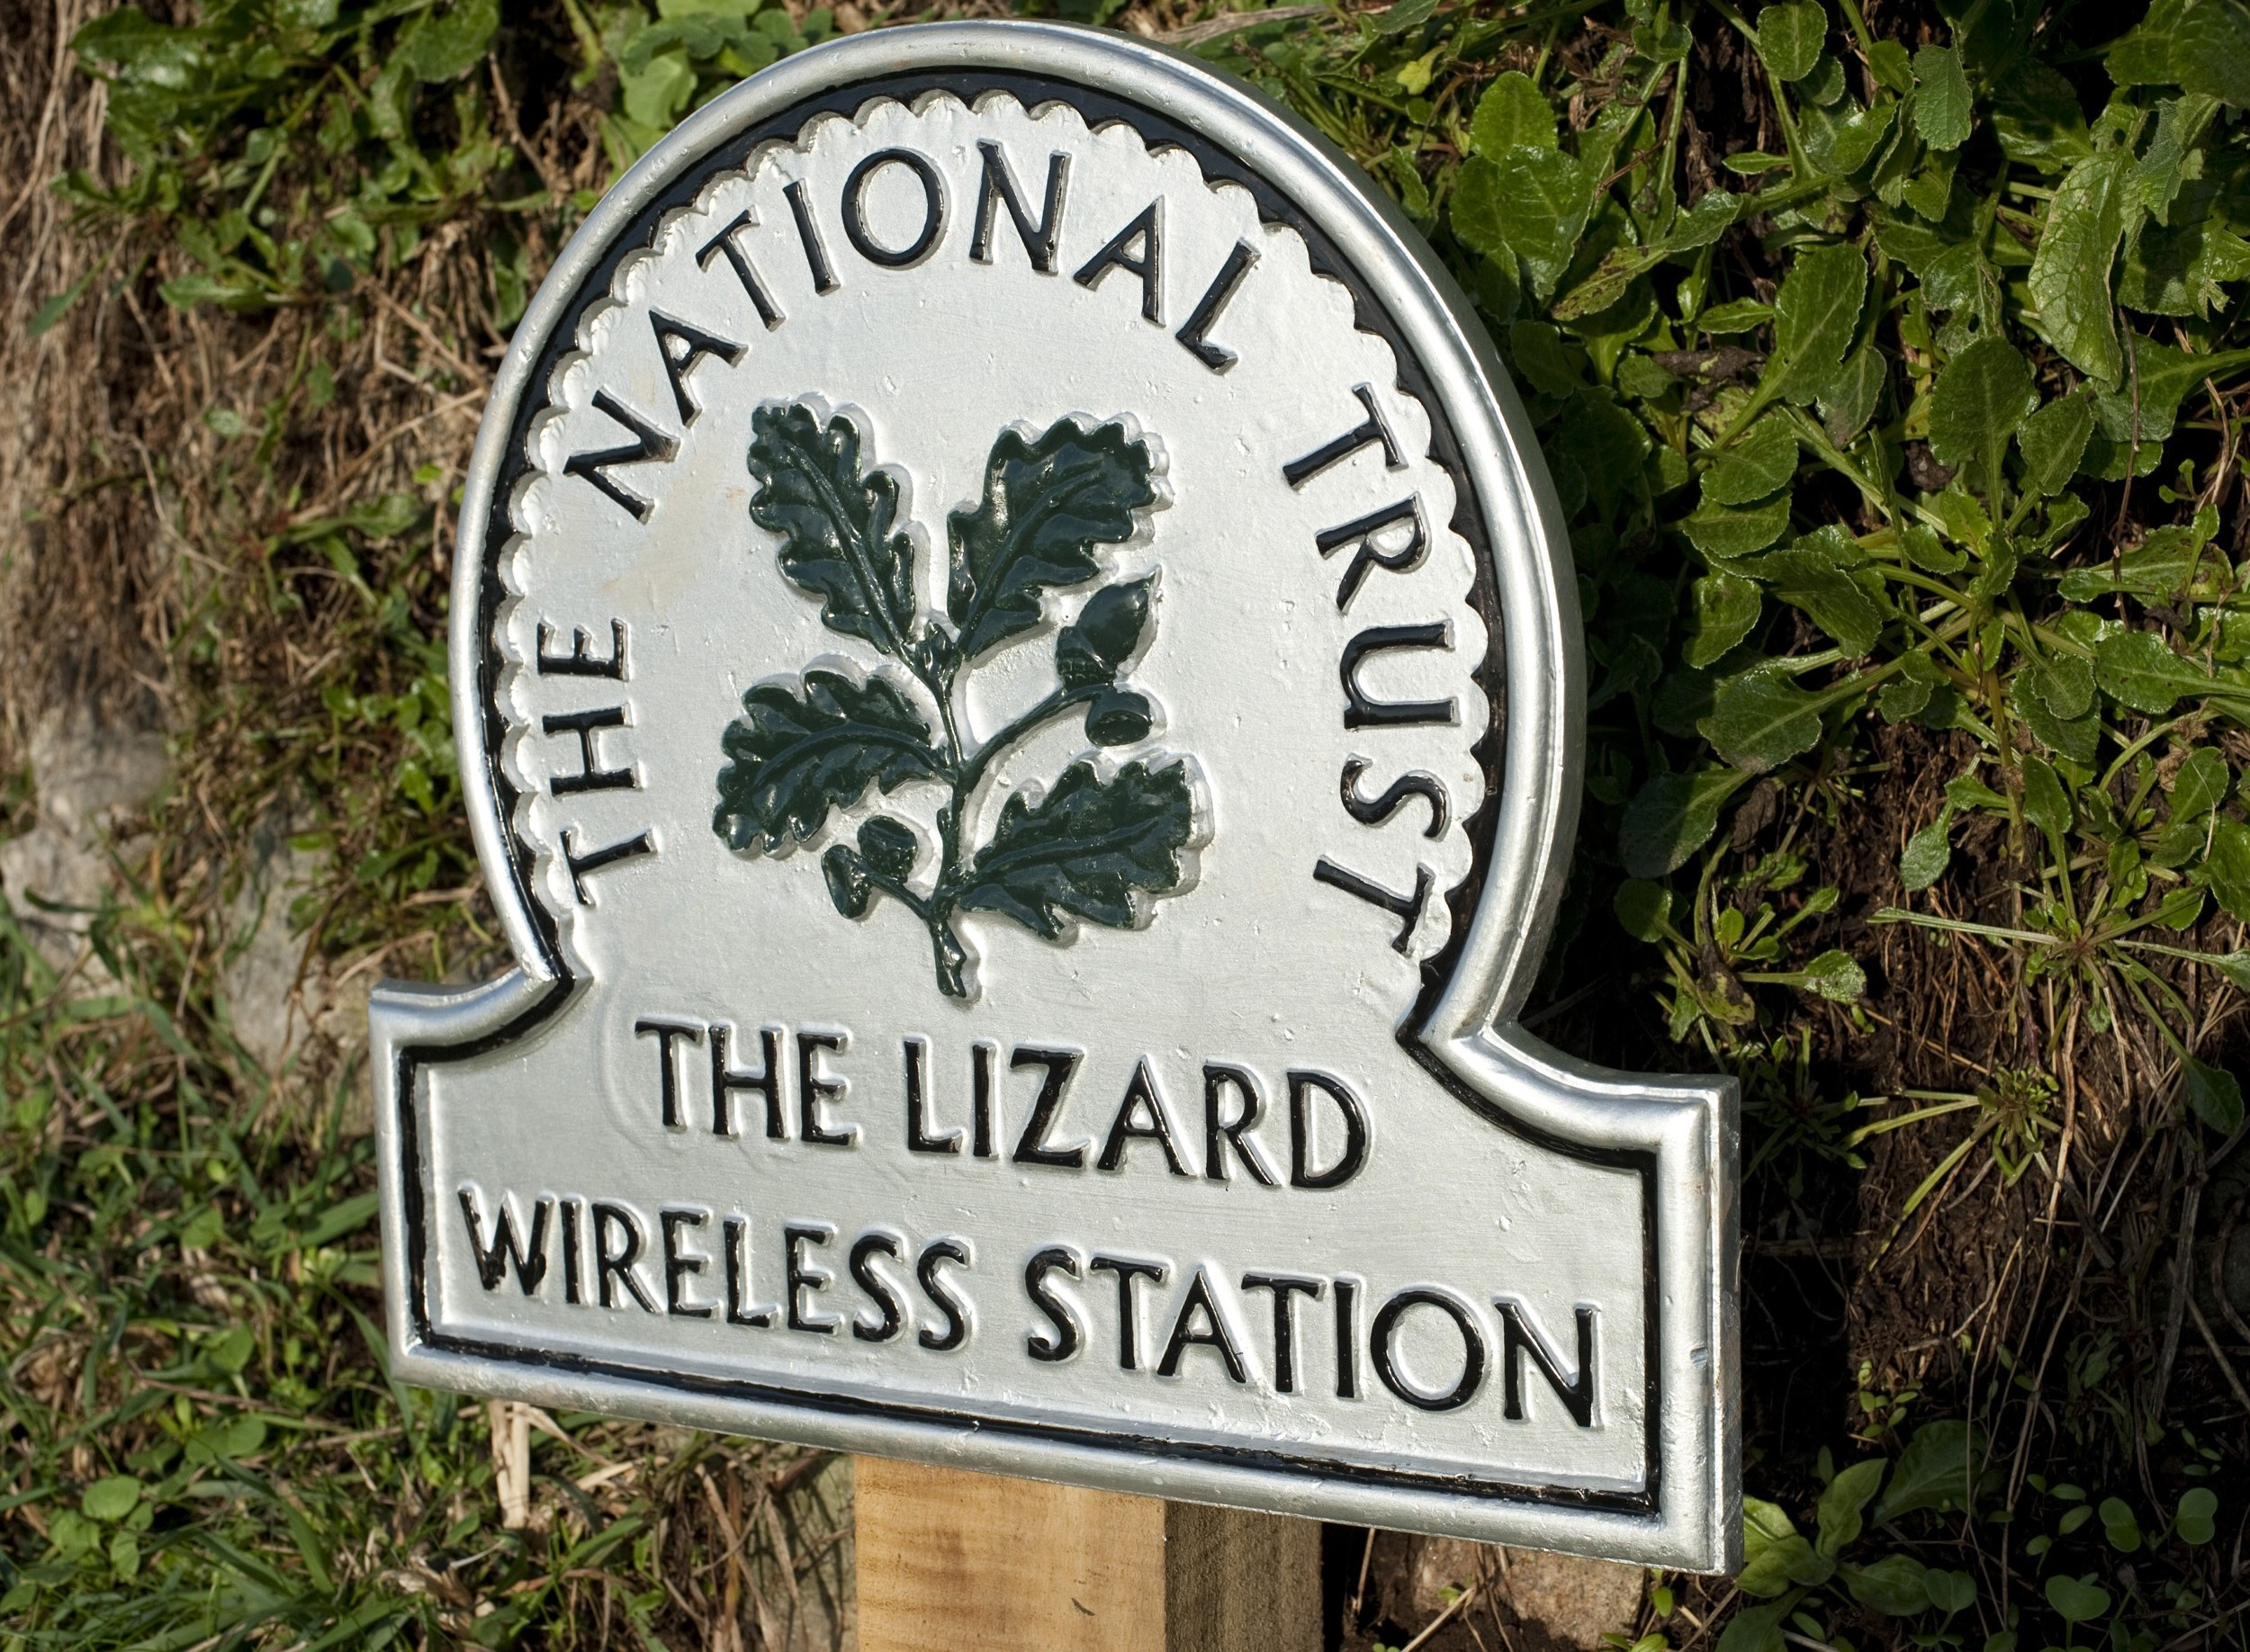 National trust sign marking the historic Lizard Wireless Station